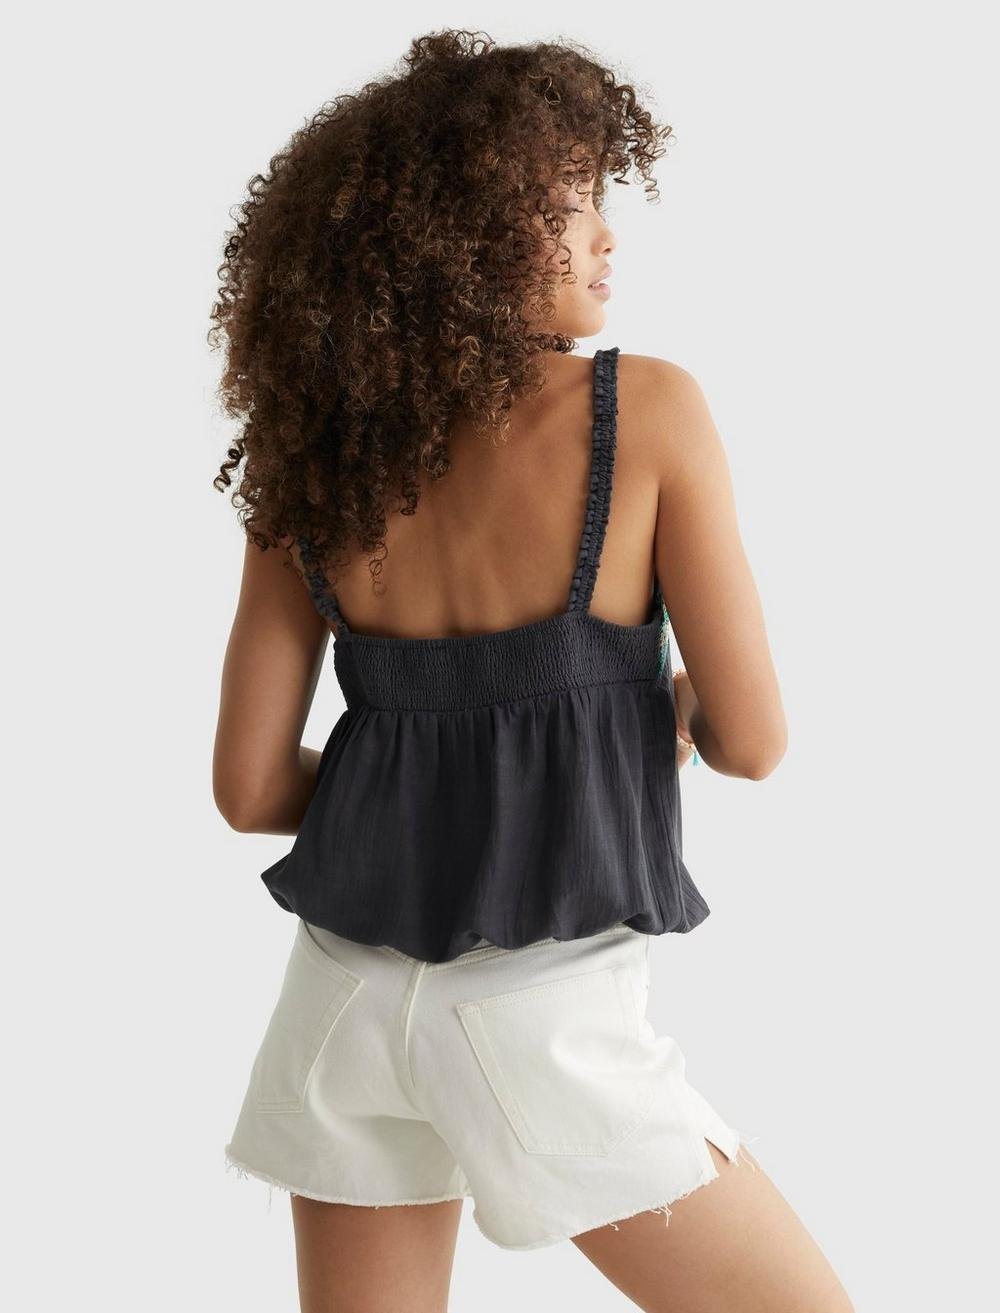 LIMITED EDITION BEADED SQUARE NECK CAMI, image 4